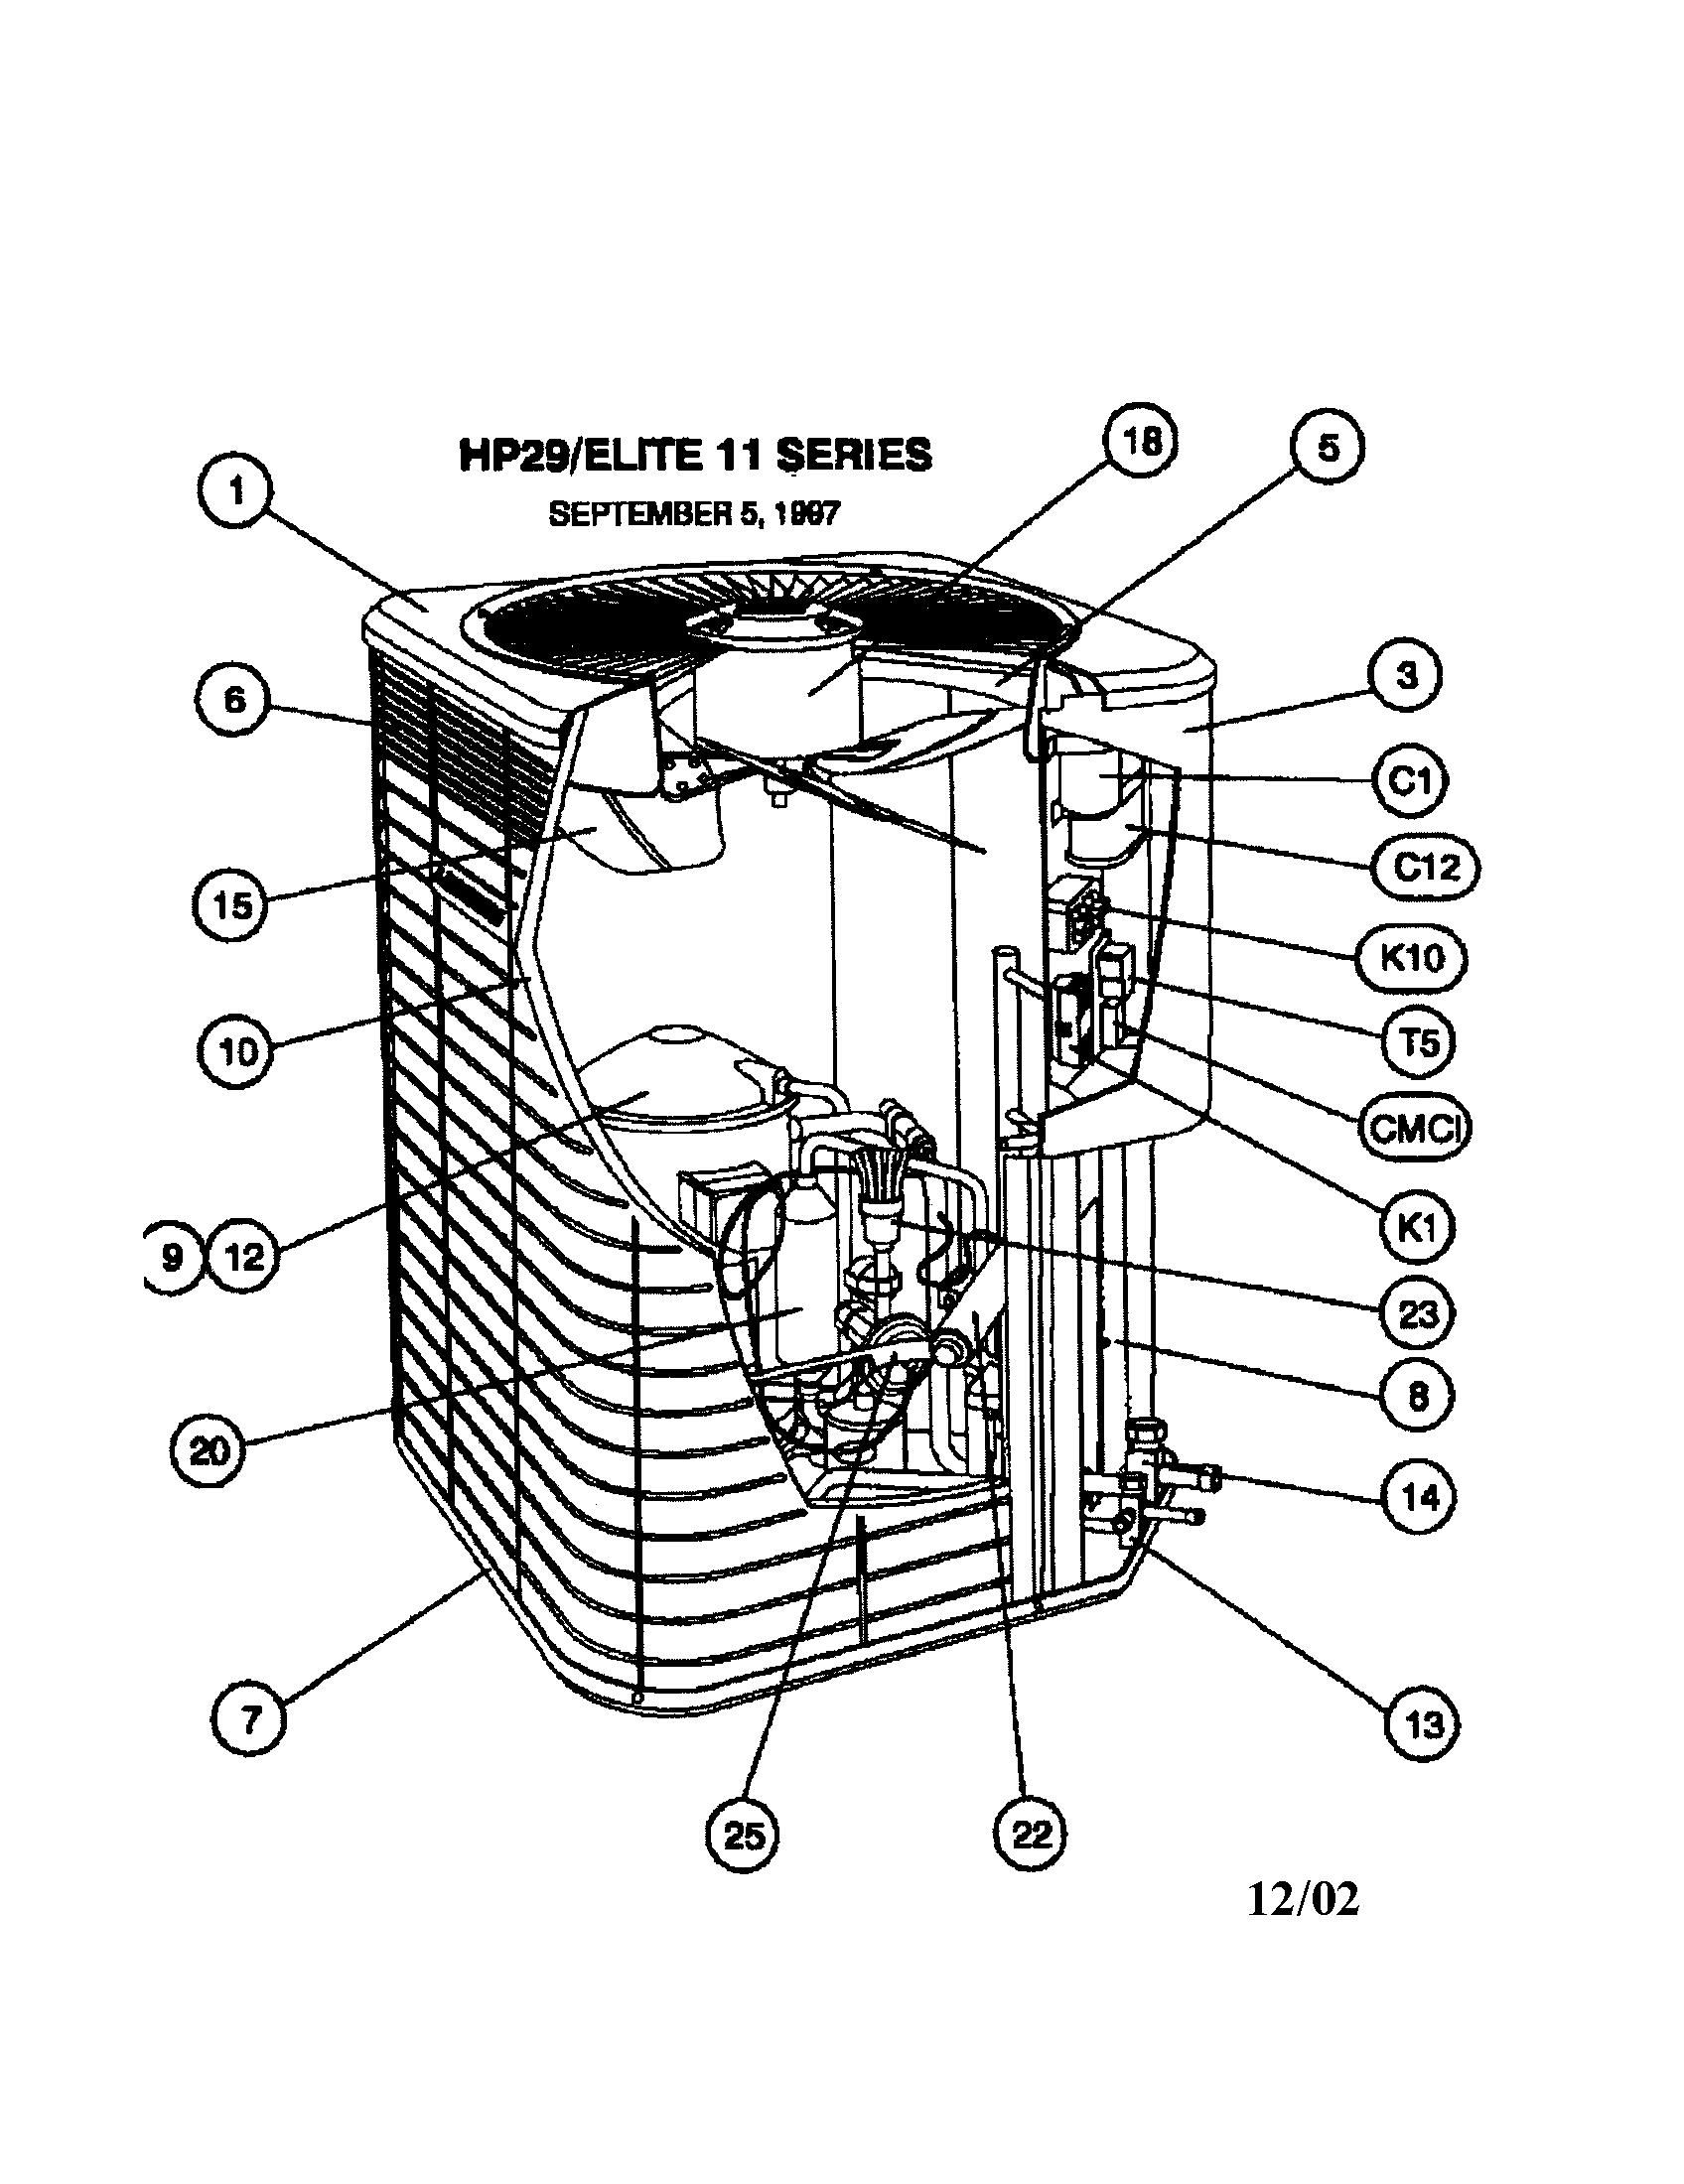 Lennox Furnace Wiring Diagram Air Conditioner